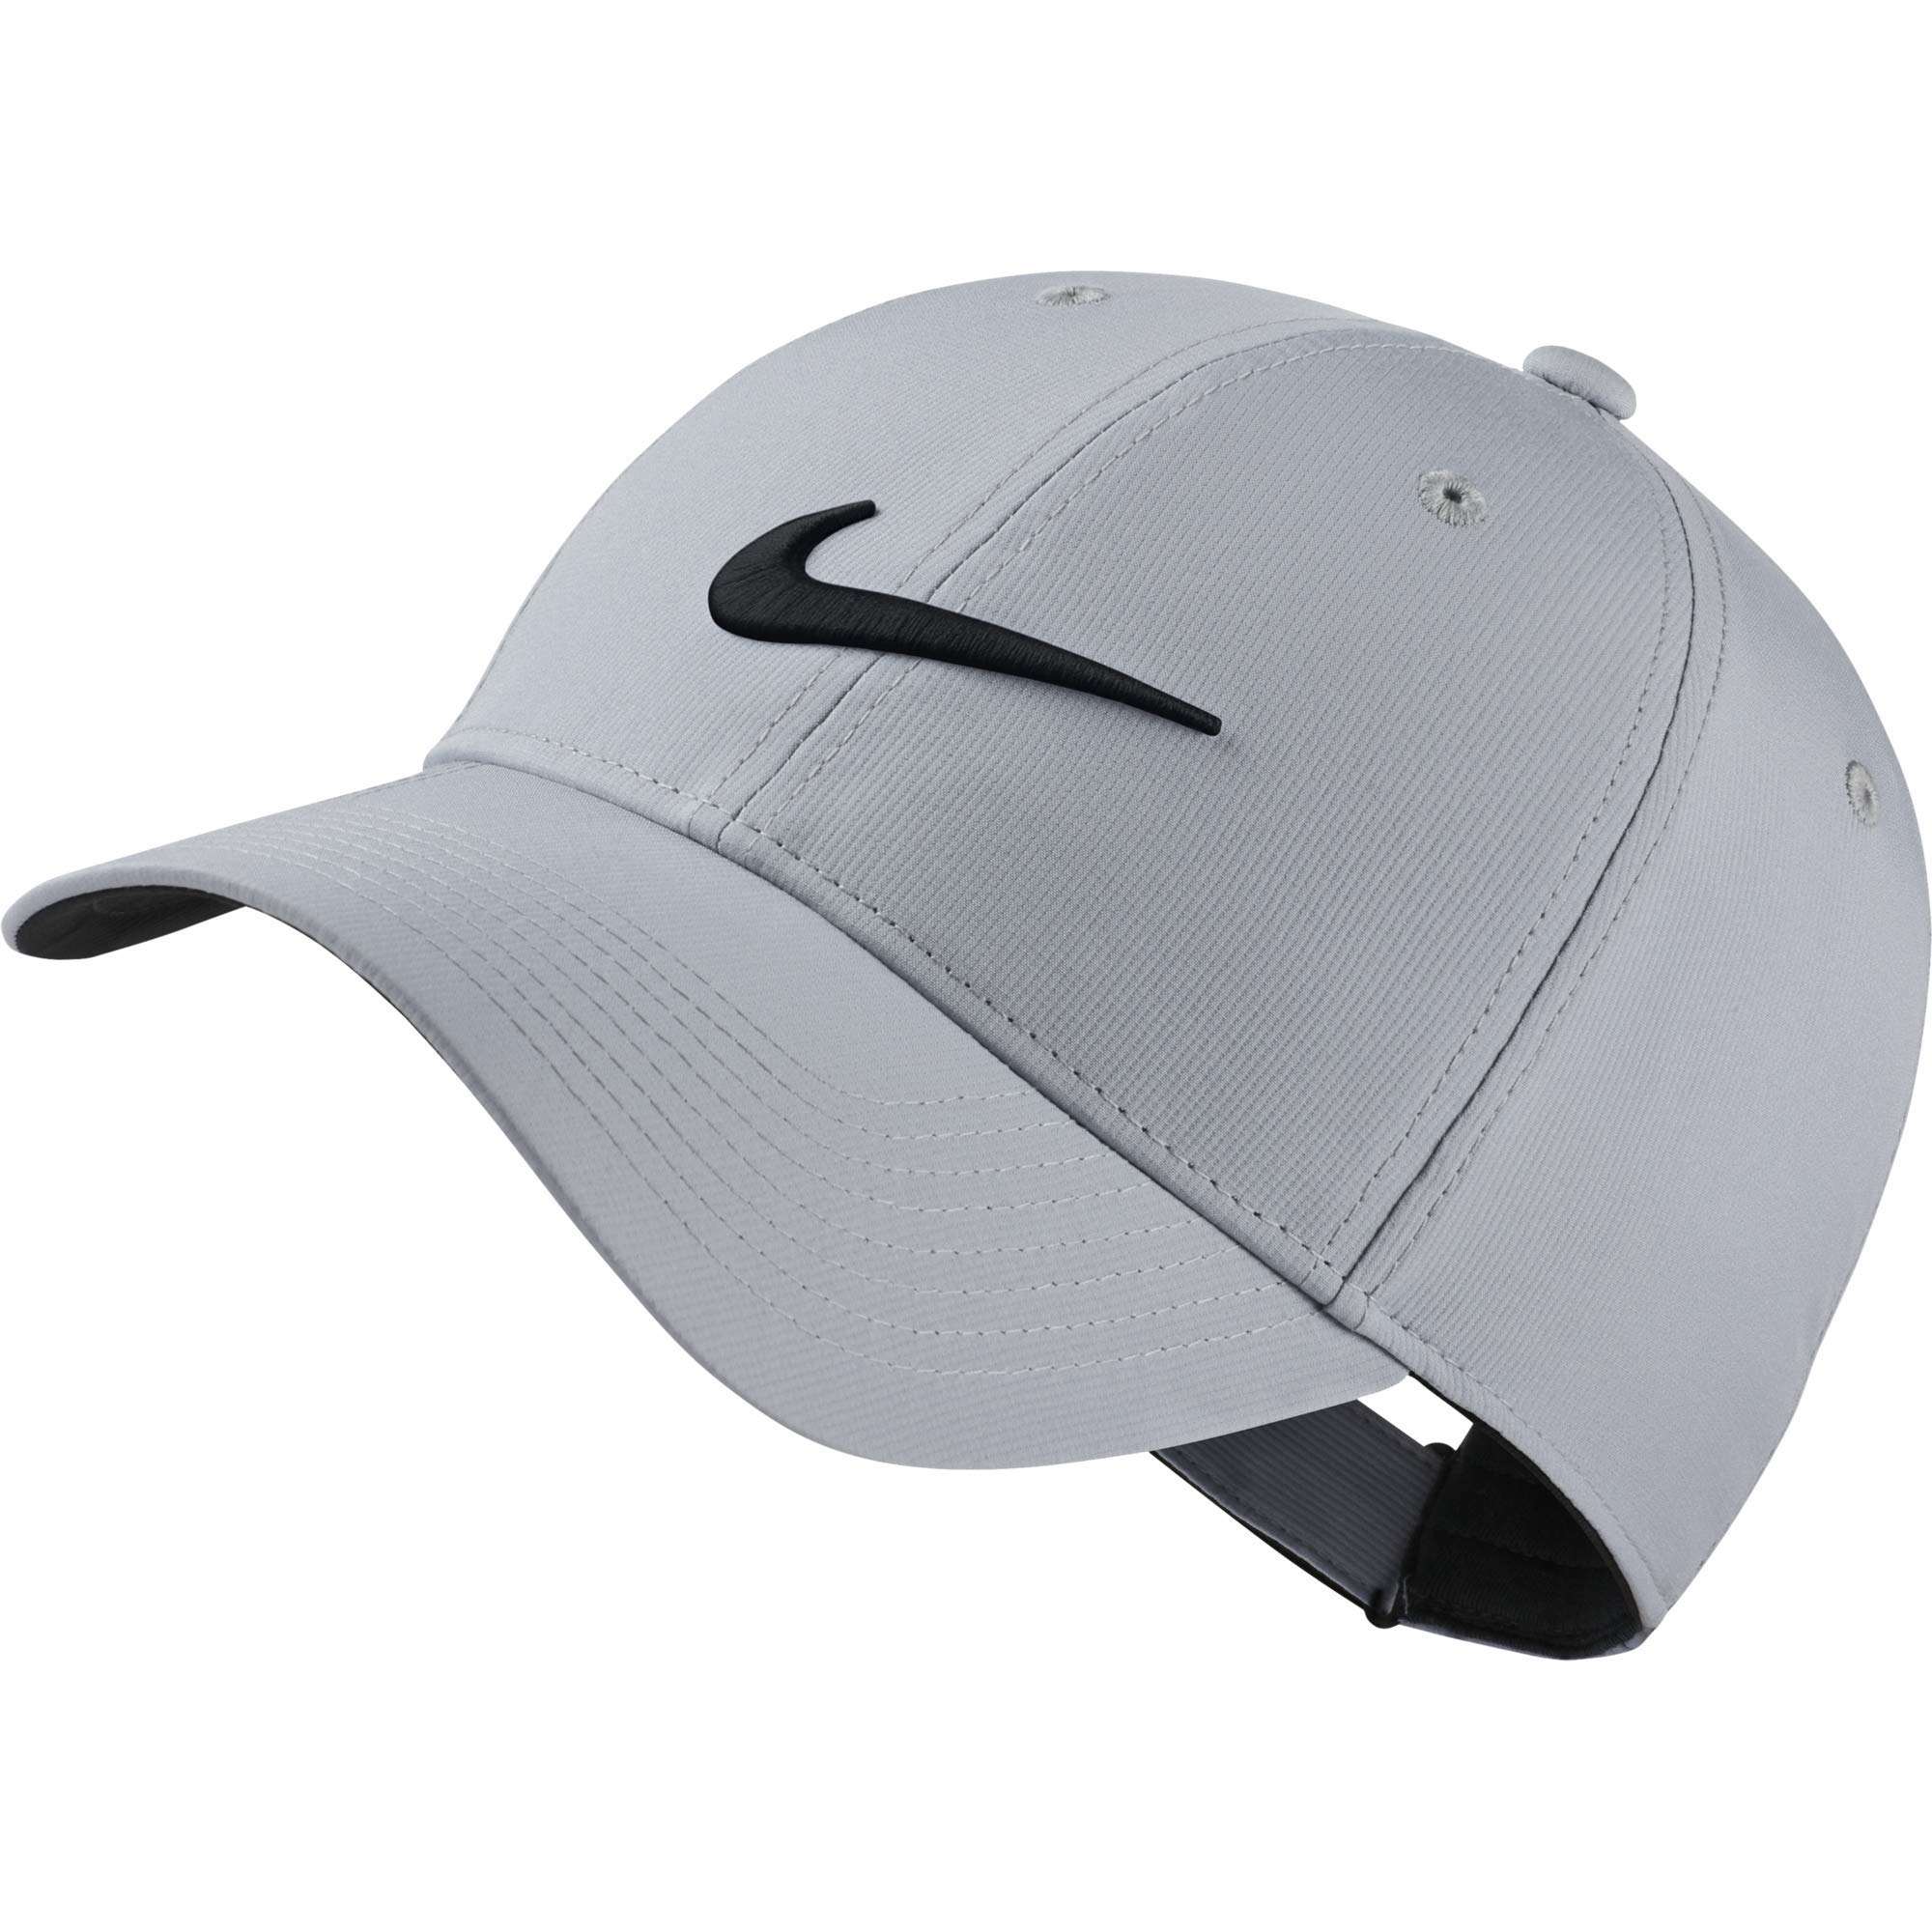 f862c3f1 Galleon - Nike Unisex Legacy Golf Cap, Adjustable & Lightweight Hat For Men  And Women, Wolf Grey/Anthracite/Black